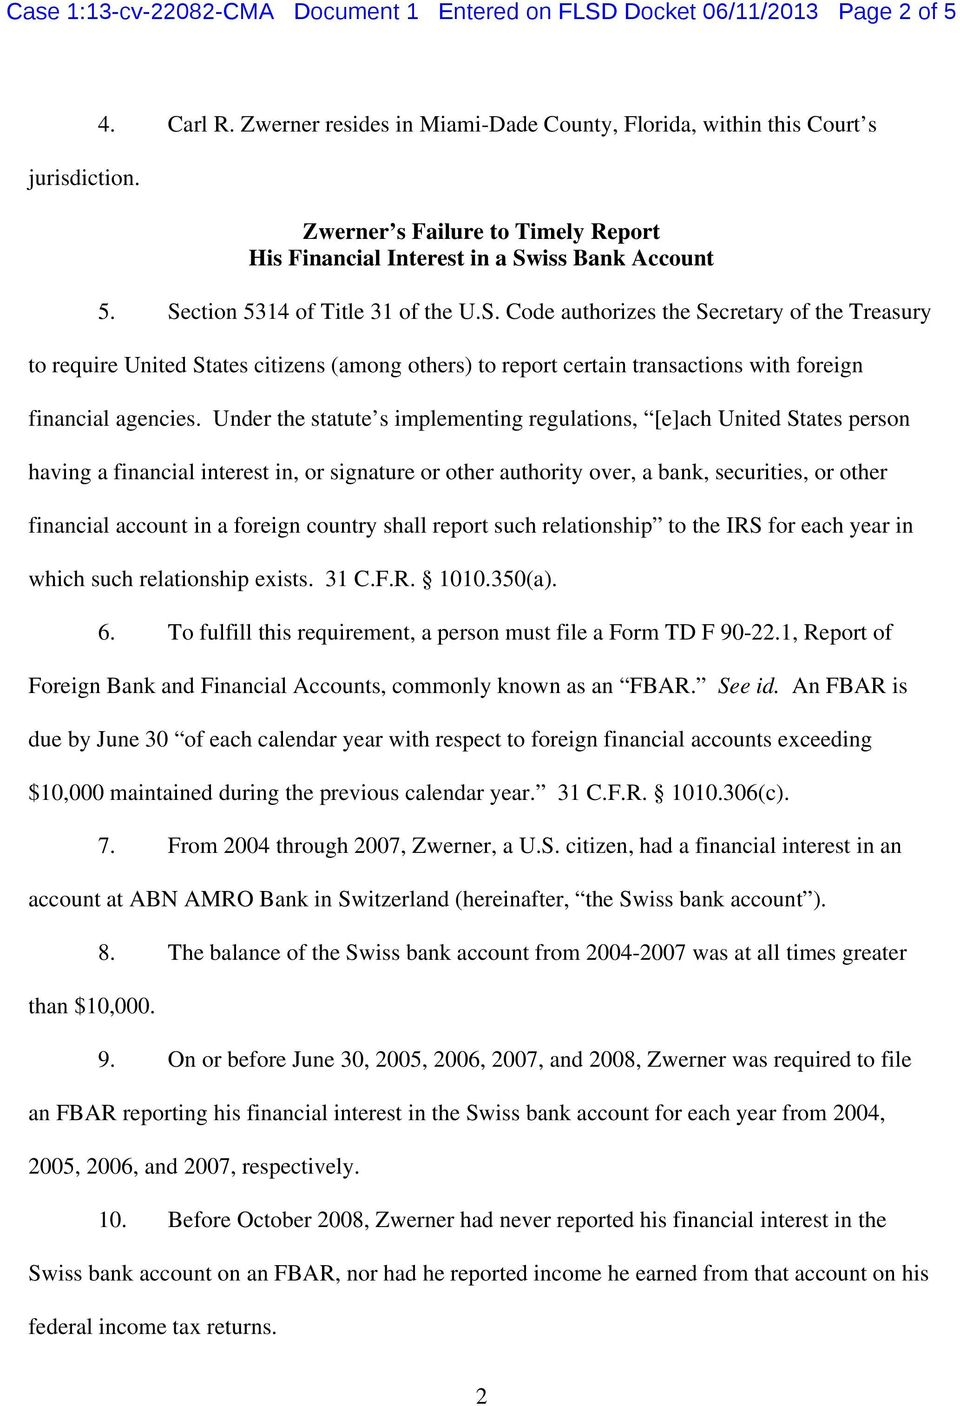 iss Bank Account 5. Section 5314 of Title 31 of the U.S. Code authorizes the Secretary of the Treasury to require United States citizens (among others) to report certain transactions with foreign financial agencies.